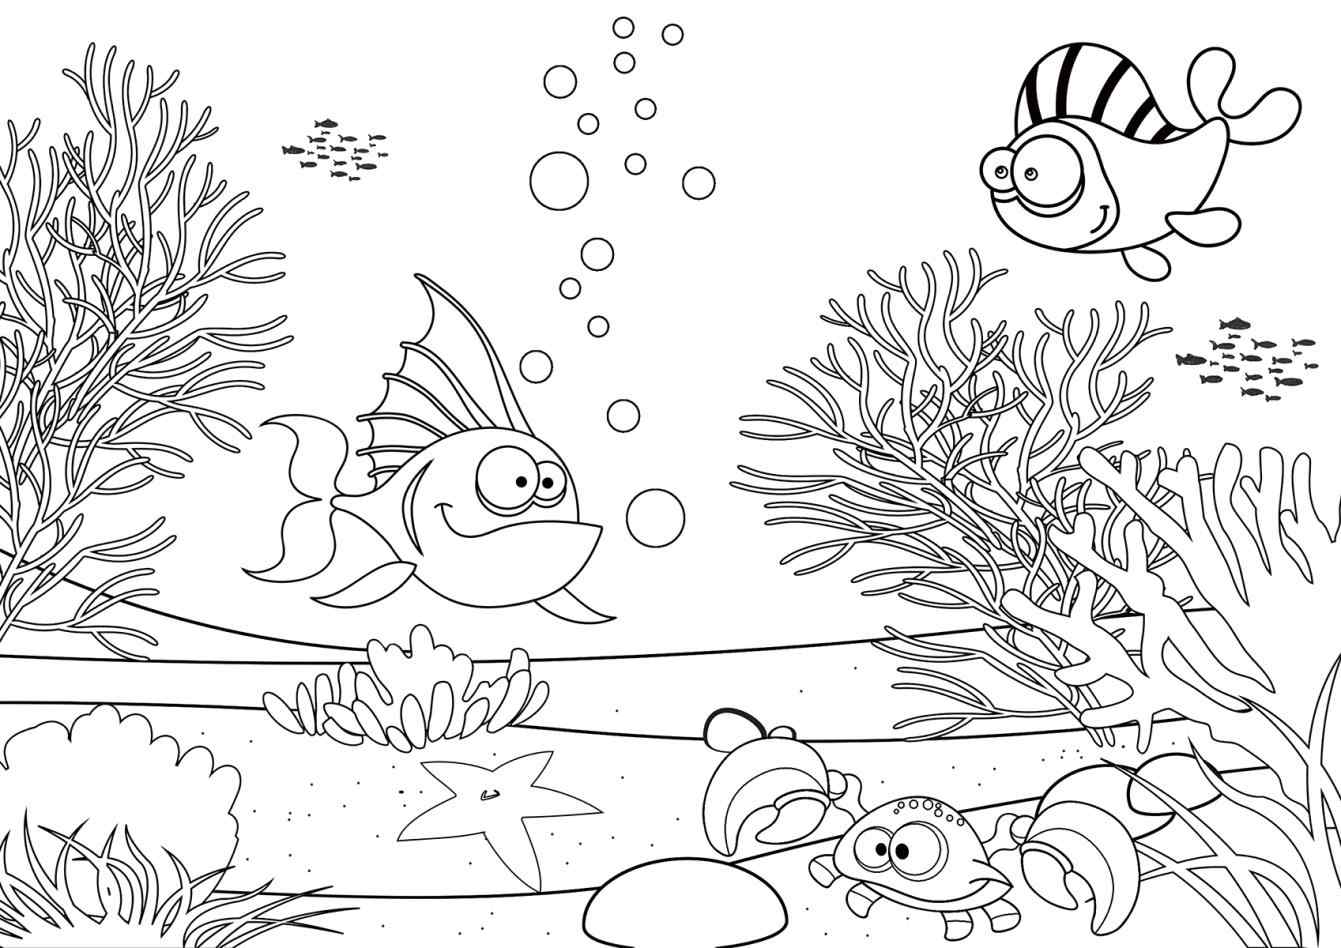 1341x948 Pond Habitat Coloring Pages Online Coloring Printable